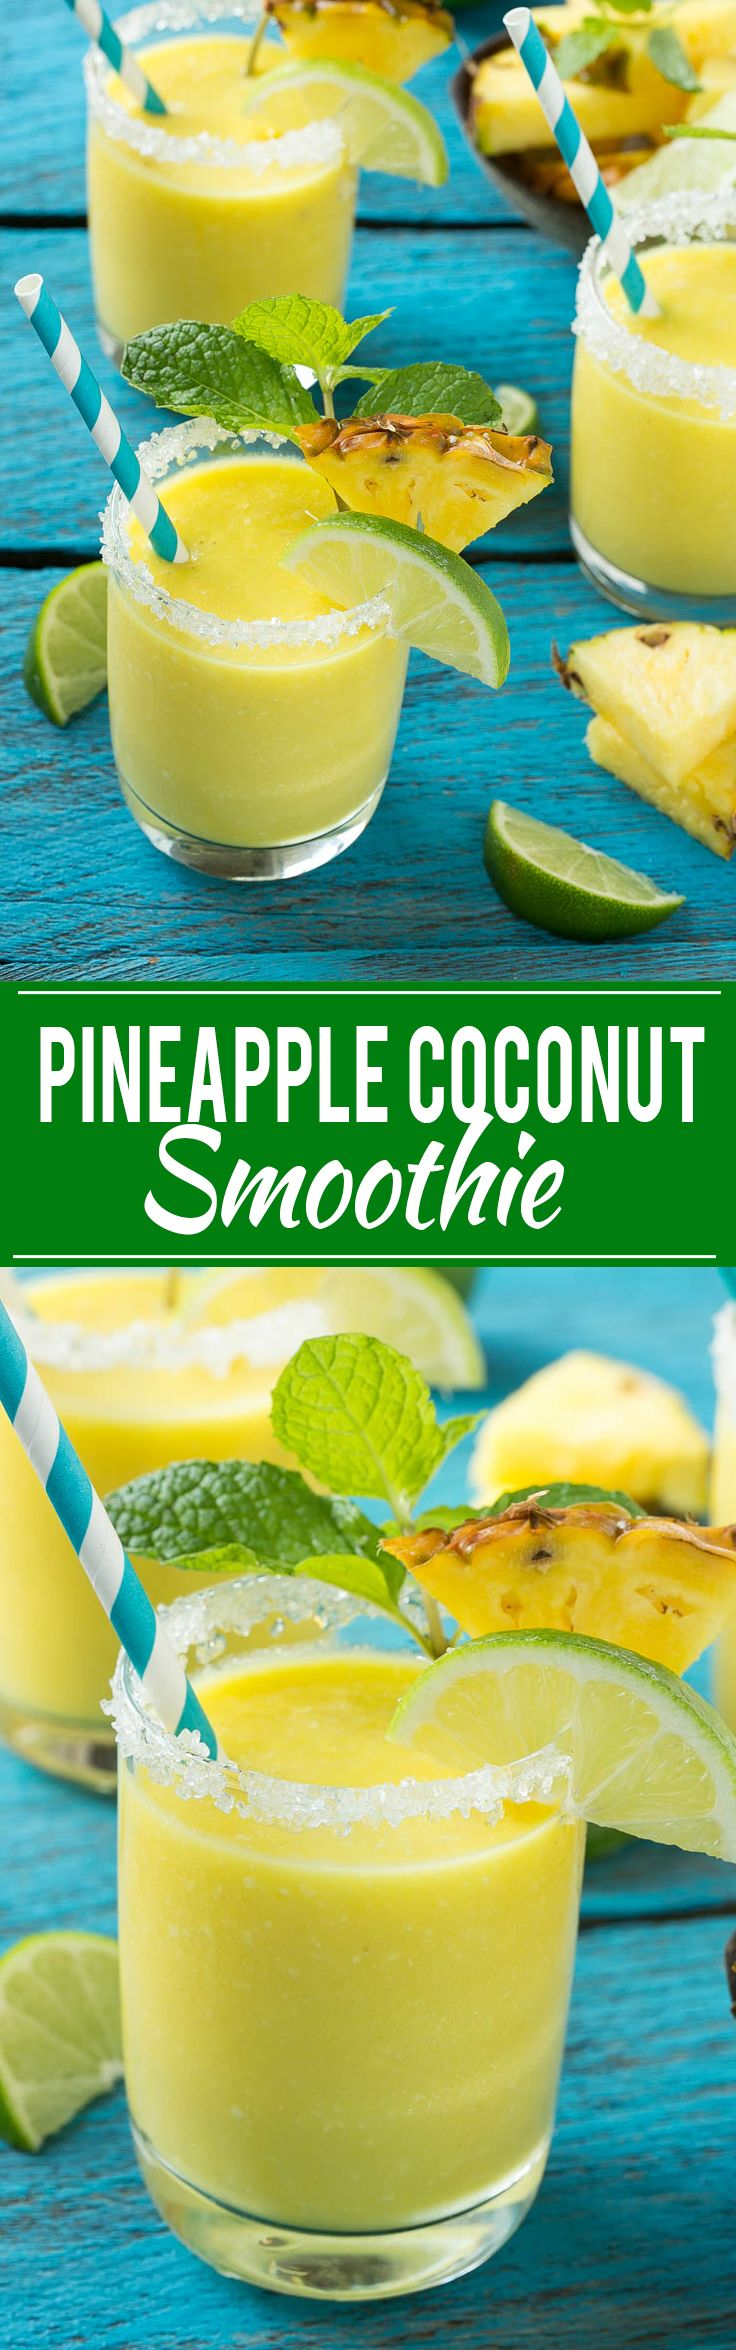 This pineapple coconut smoothie recipe is a tropical fruit delight that's both healthy and refreshing. #ad: